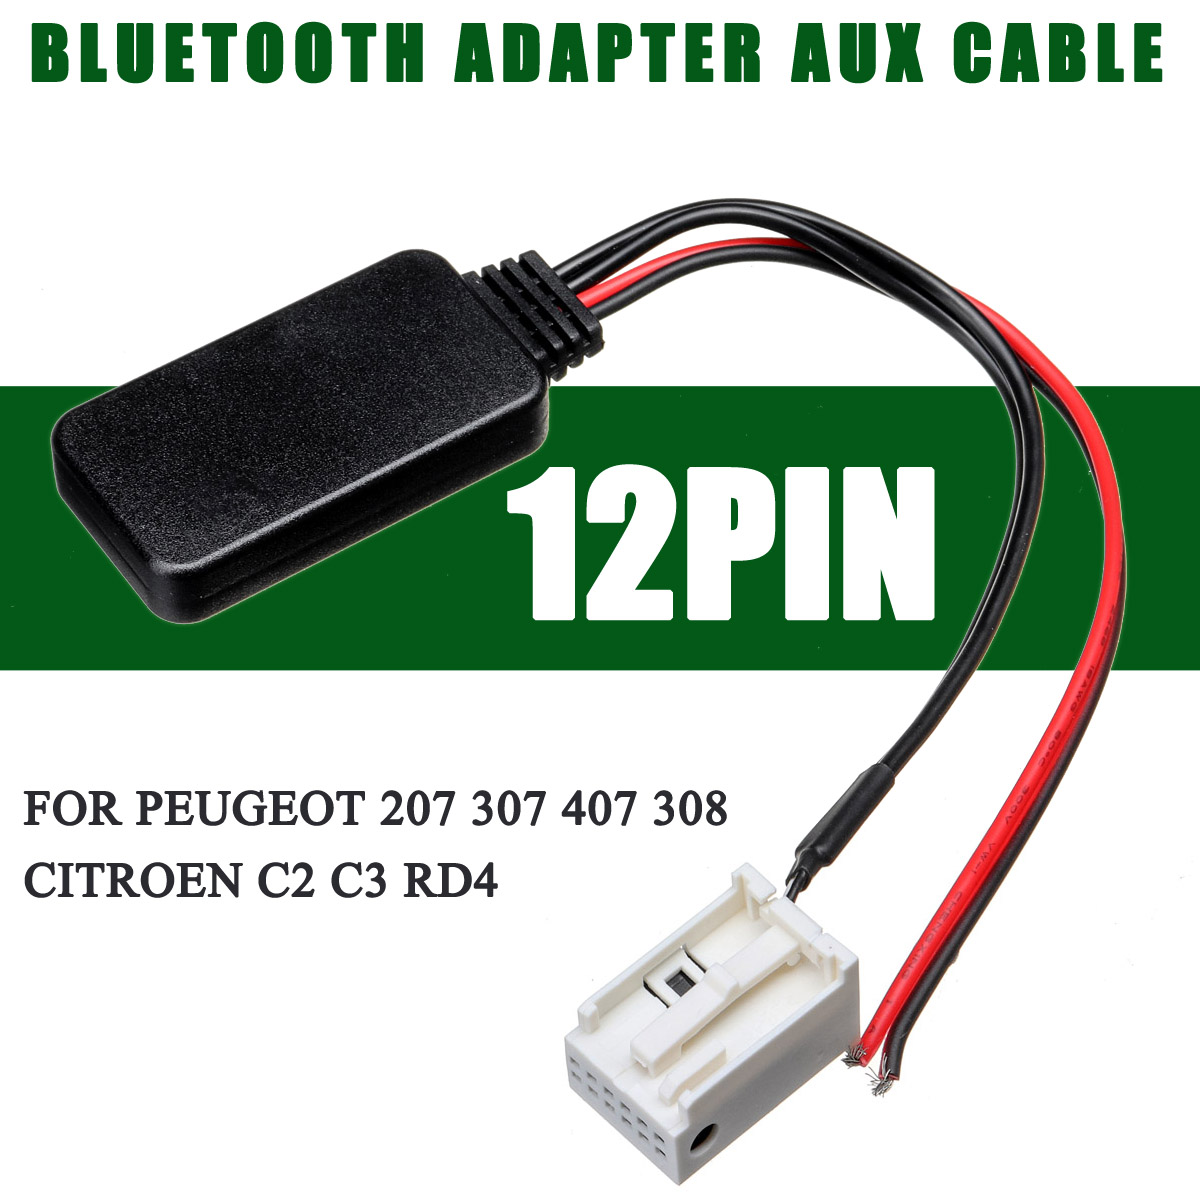 12V <font><b>bluetooth</b></font> Wireless Radio Audio Stereo AUX-IN Module Aux Cable <font><b>Adapter</b></font> For <font><b>Peugeot</b></font> 207 307 <font><b>407</b></font> 308 For Citroen C2 C3 RD4 image